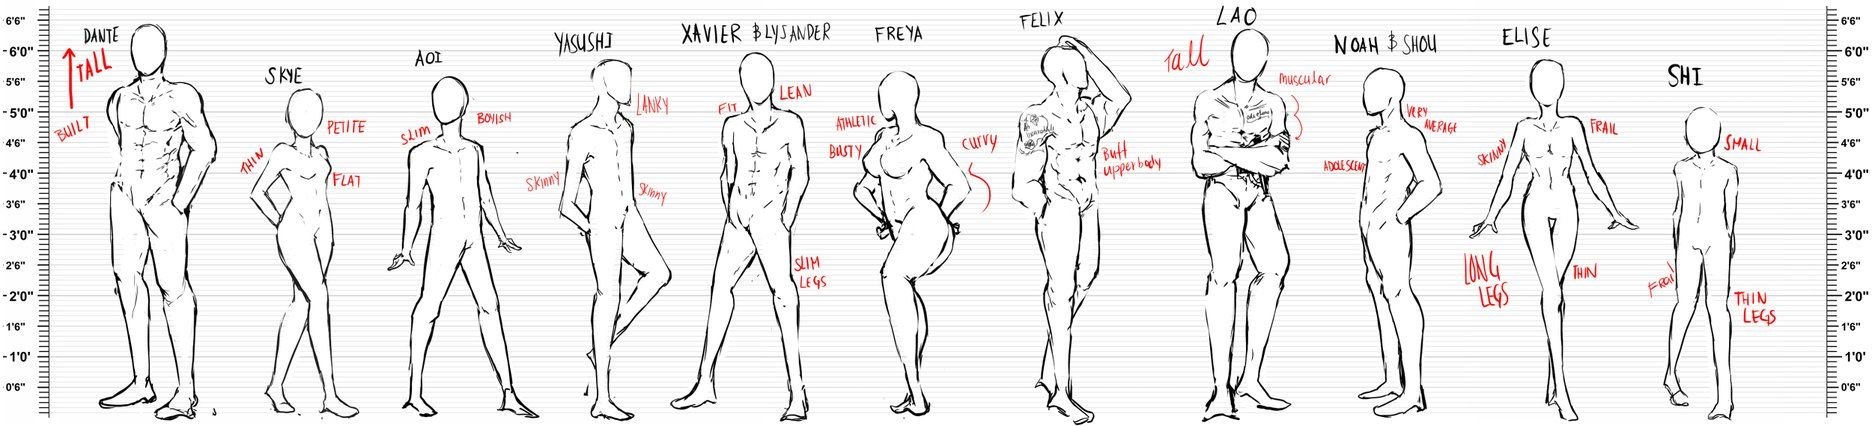 Body Type And Height Reference By Calvariae In 2019 Body